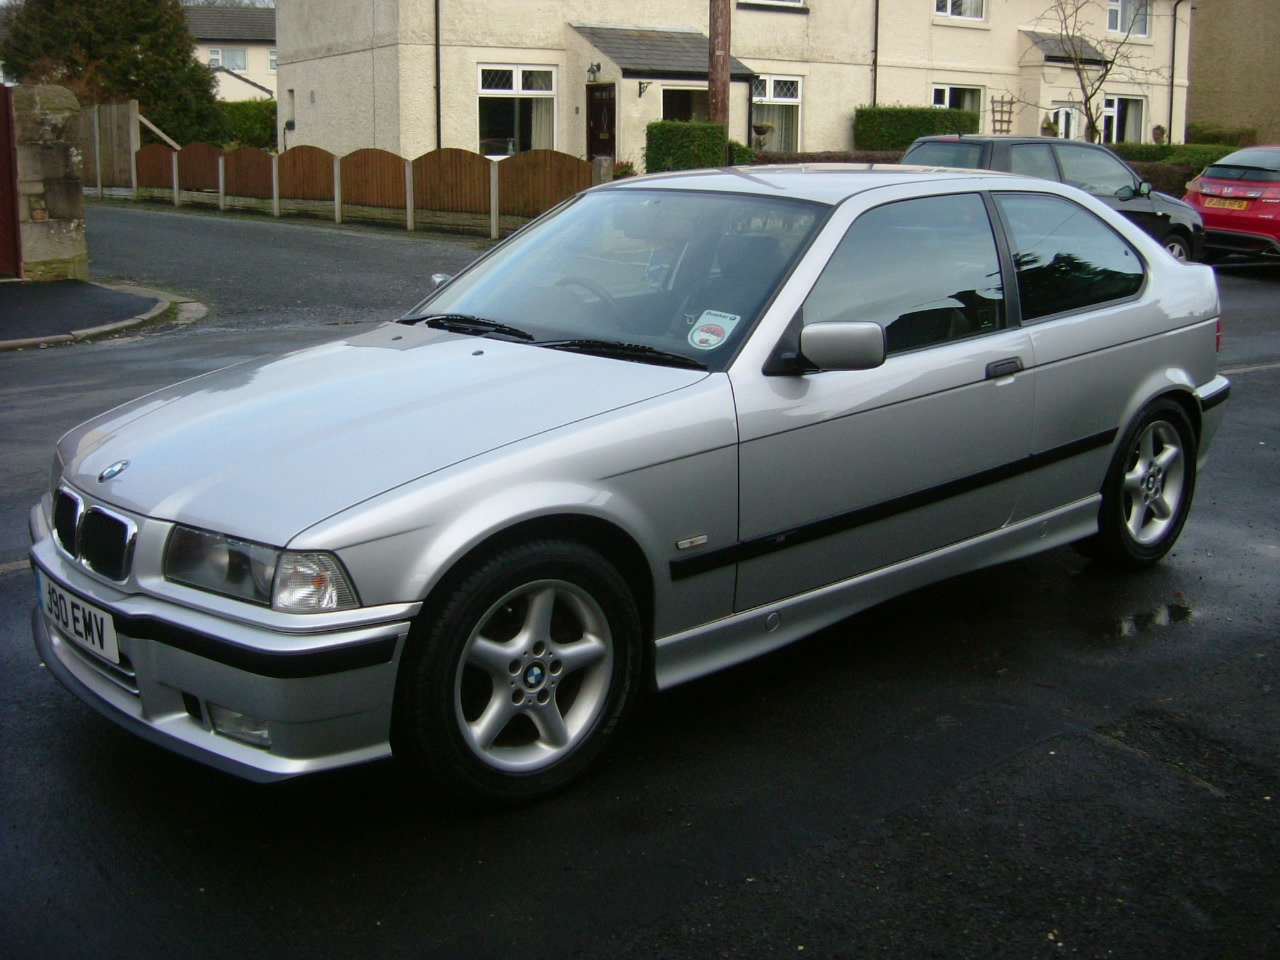 BMW 3 series 330Ci 1999 photo - 8